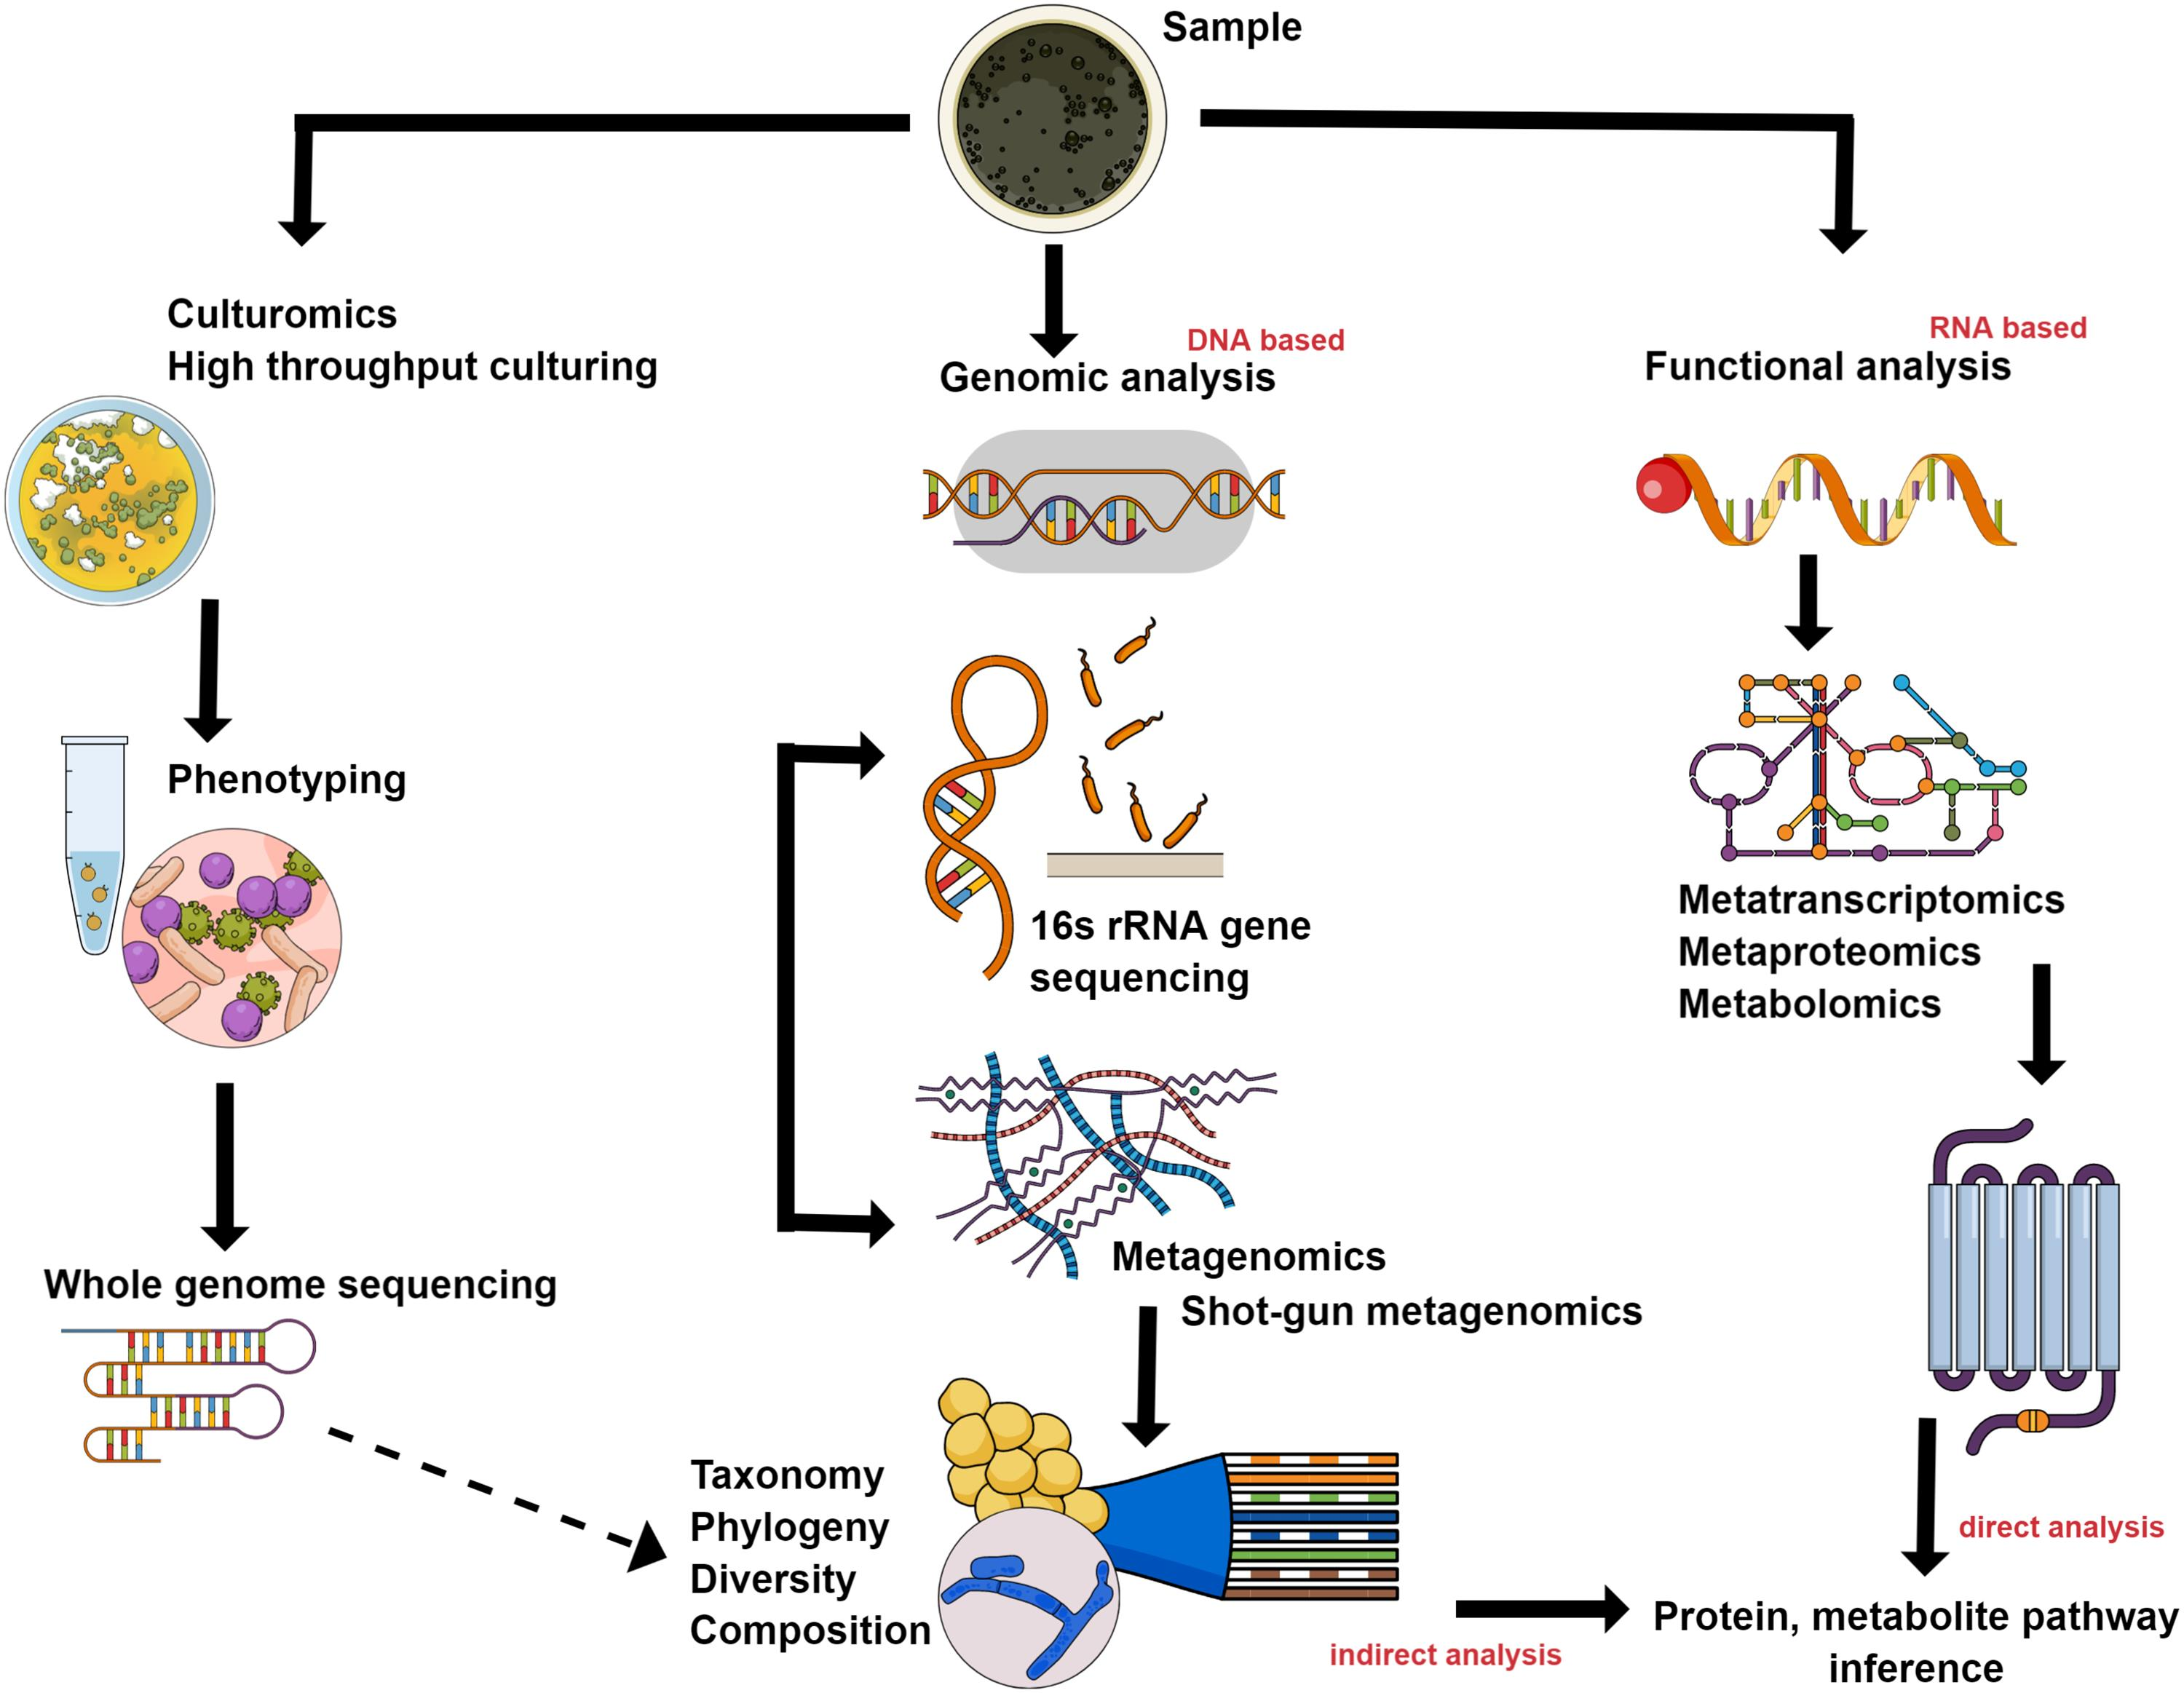 Various methods for identifying and studying the gut microbiota and microbiome.